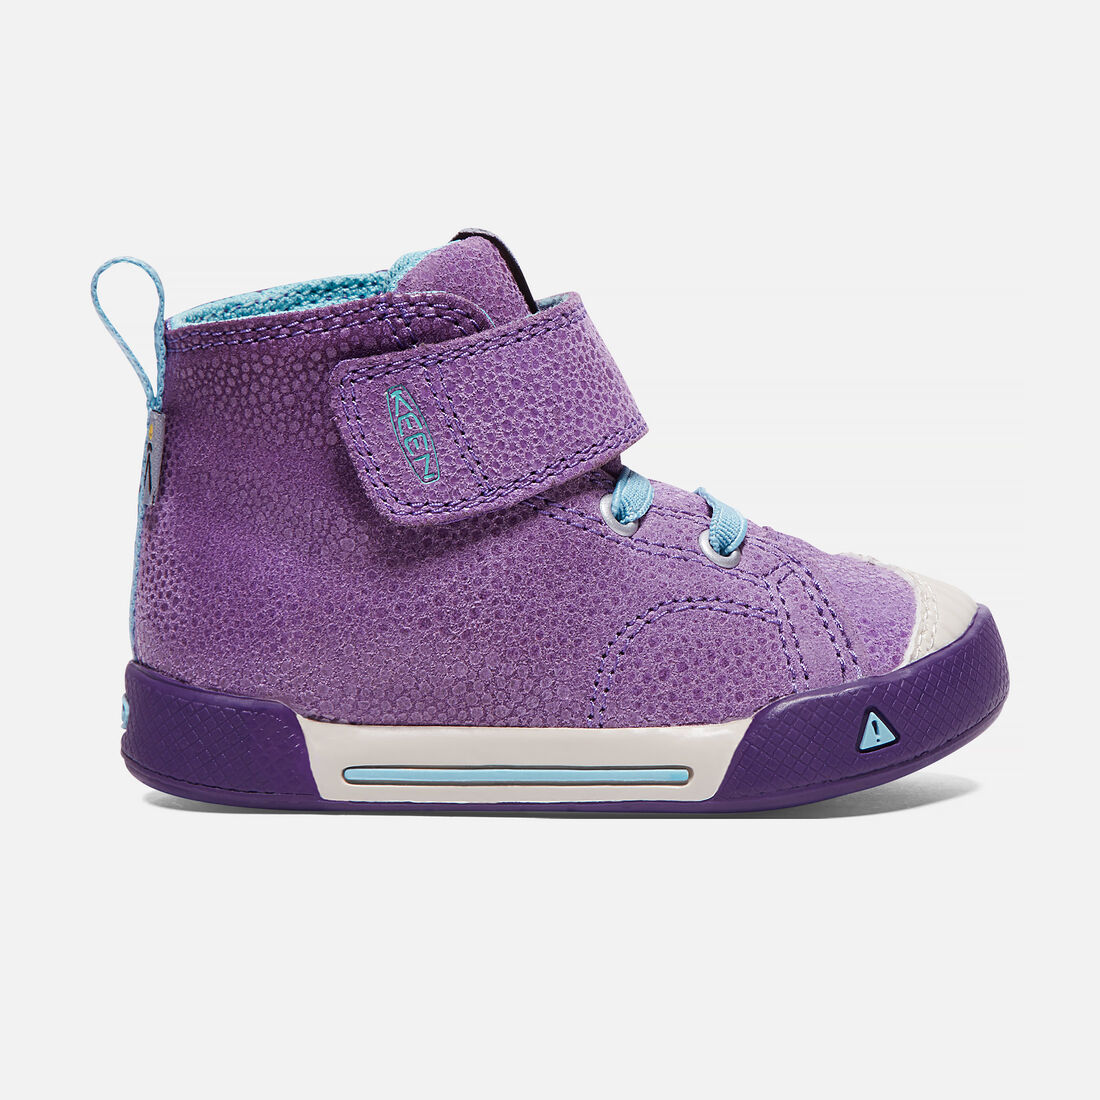 Toddlers' Encanto Scout High Top in Purple Plumeria/Aqua Haze - large view.